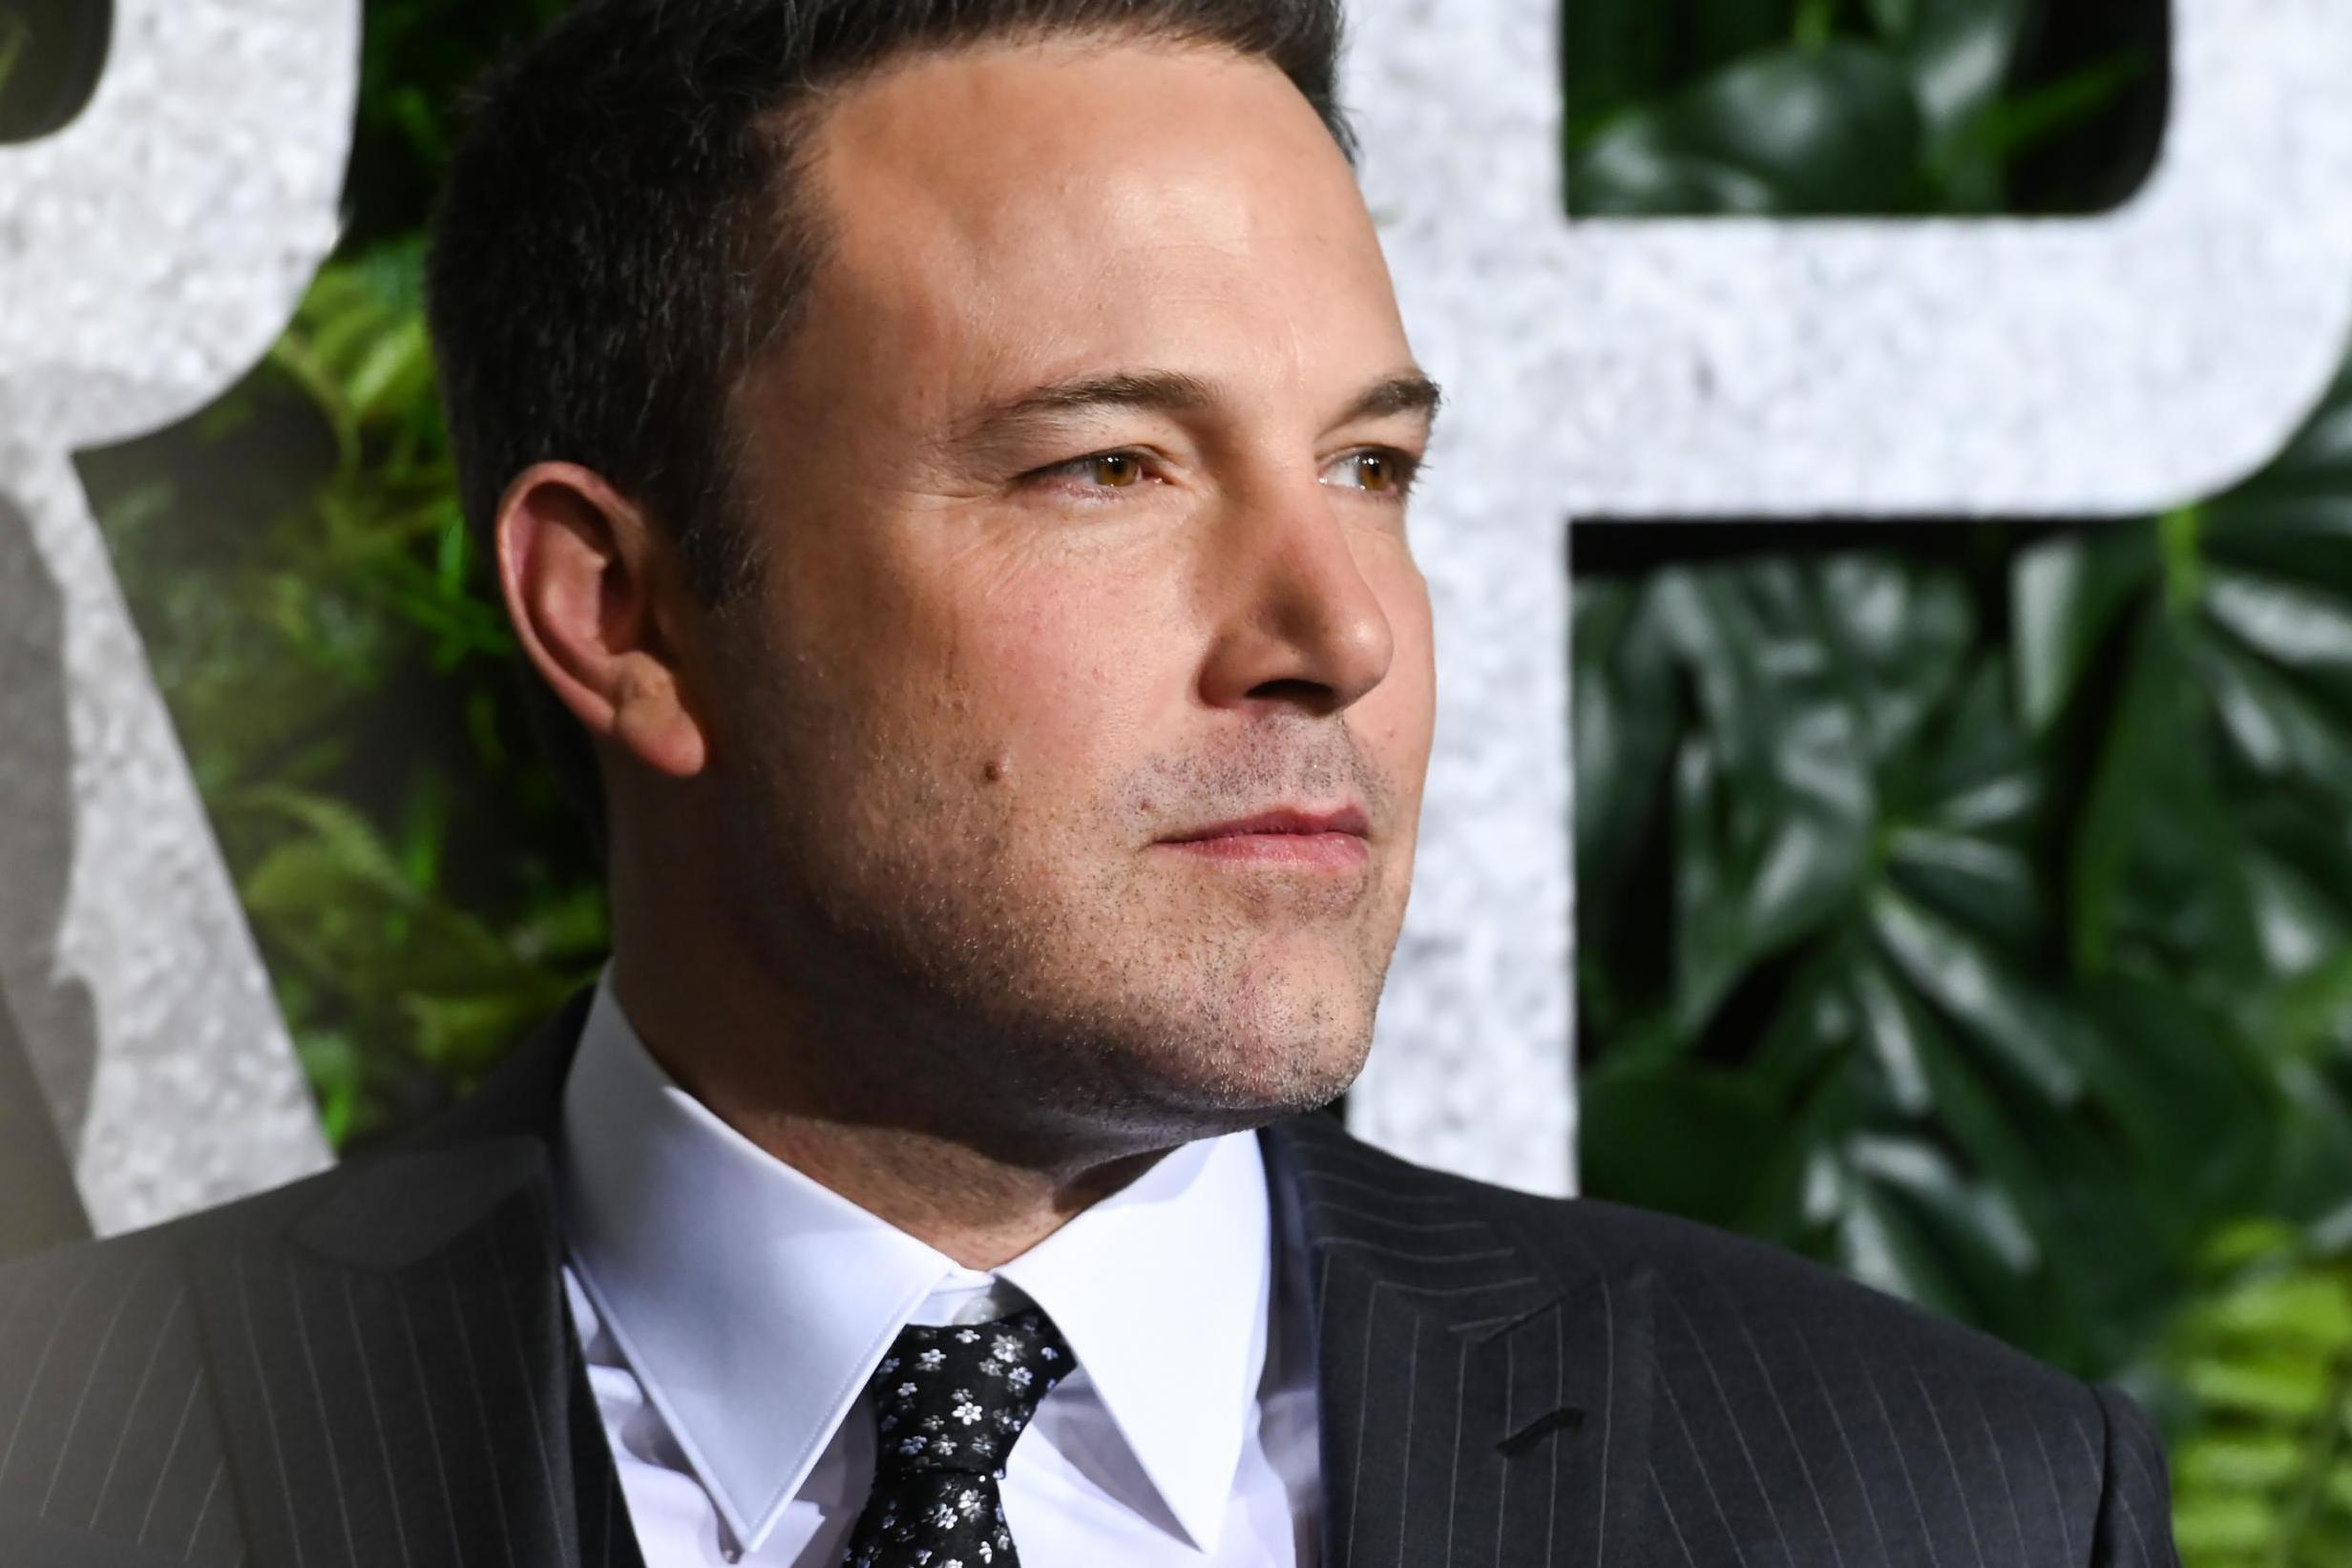 Ben Affleck calls divorce from Jennifer Garner 'the biggest regret of my life'